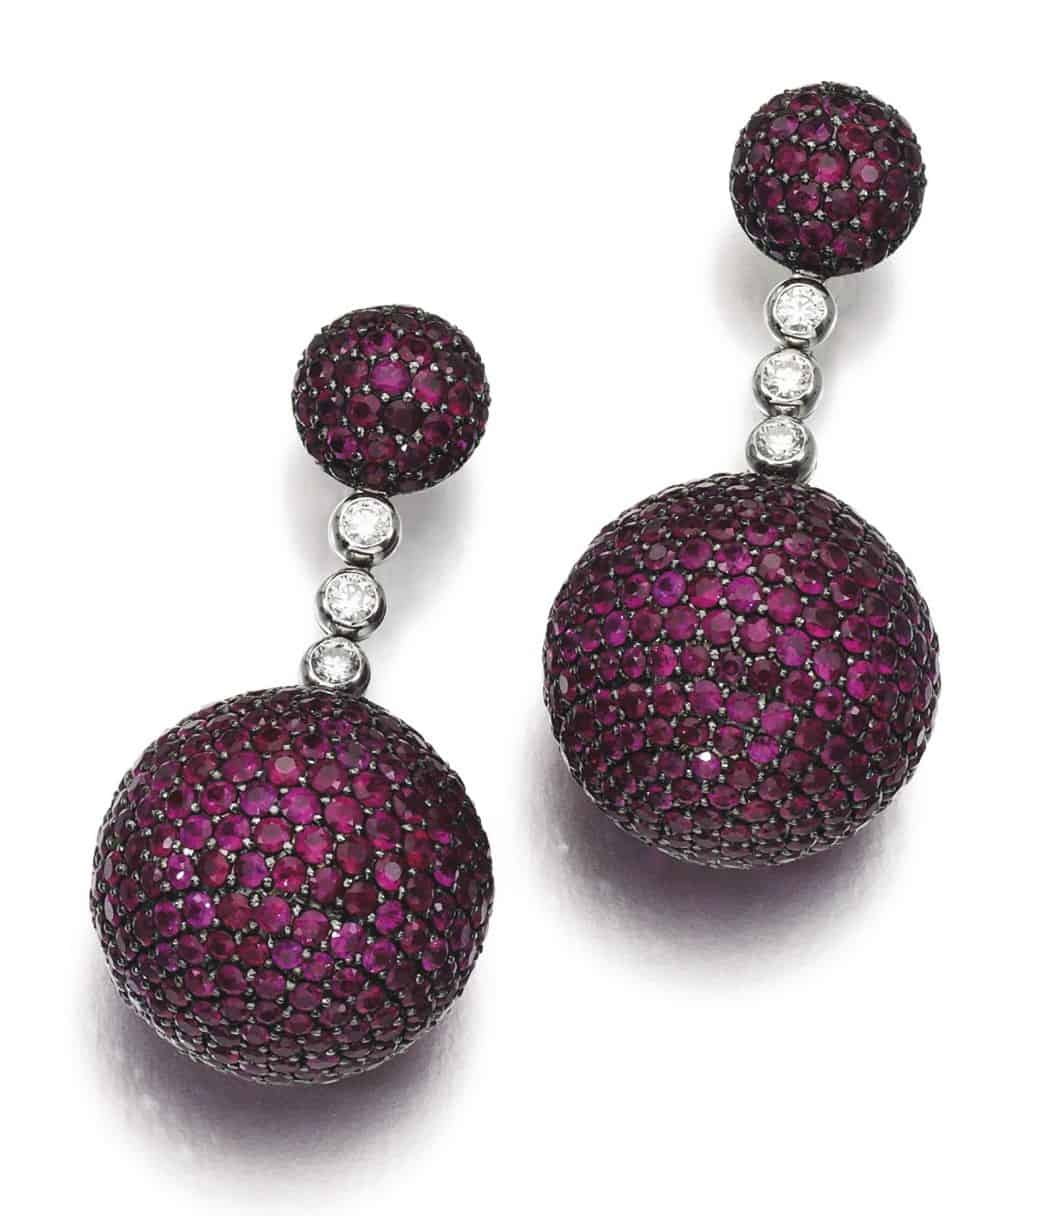 Lot 134 -- Pair of Ruby and Diamond Ear Clips, 'Boule', de Grisogono